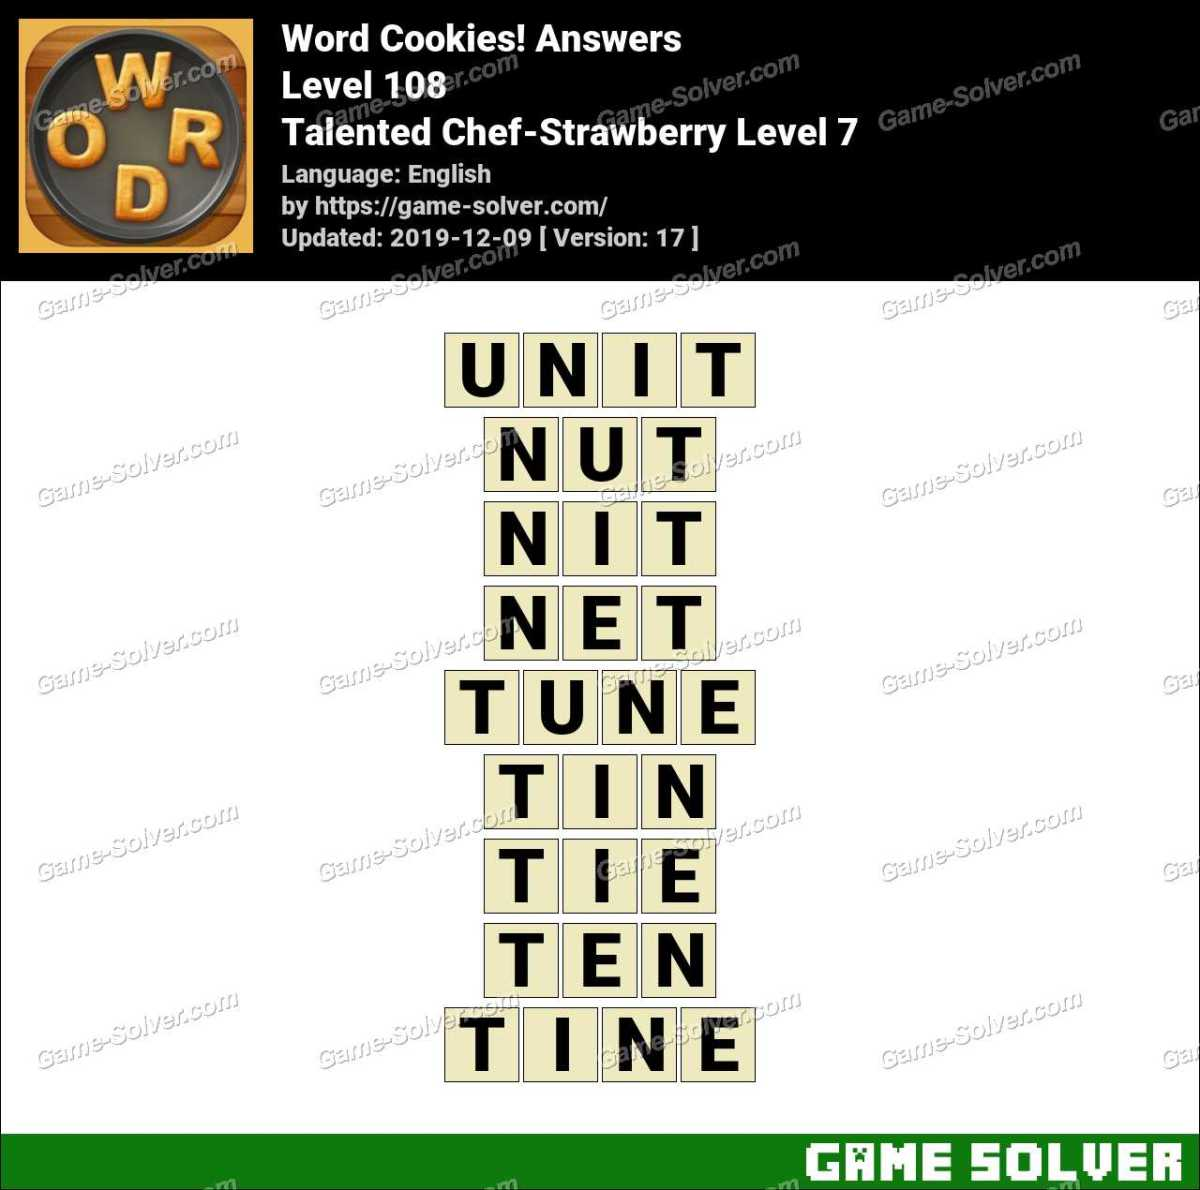 Word Cookies Talented Chef-Strawberry Level 7 Answers